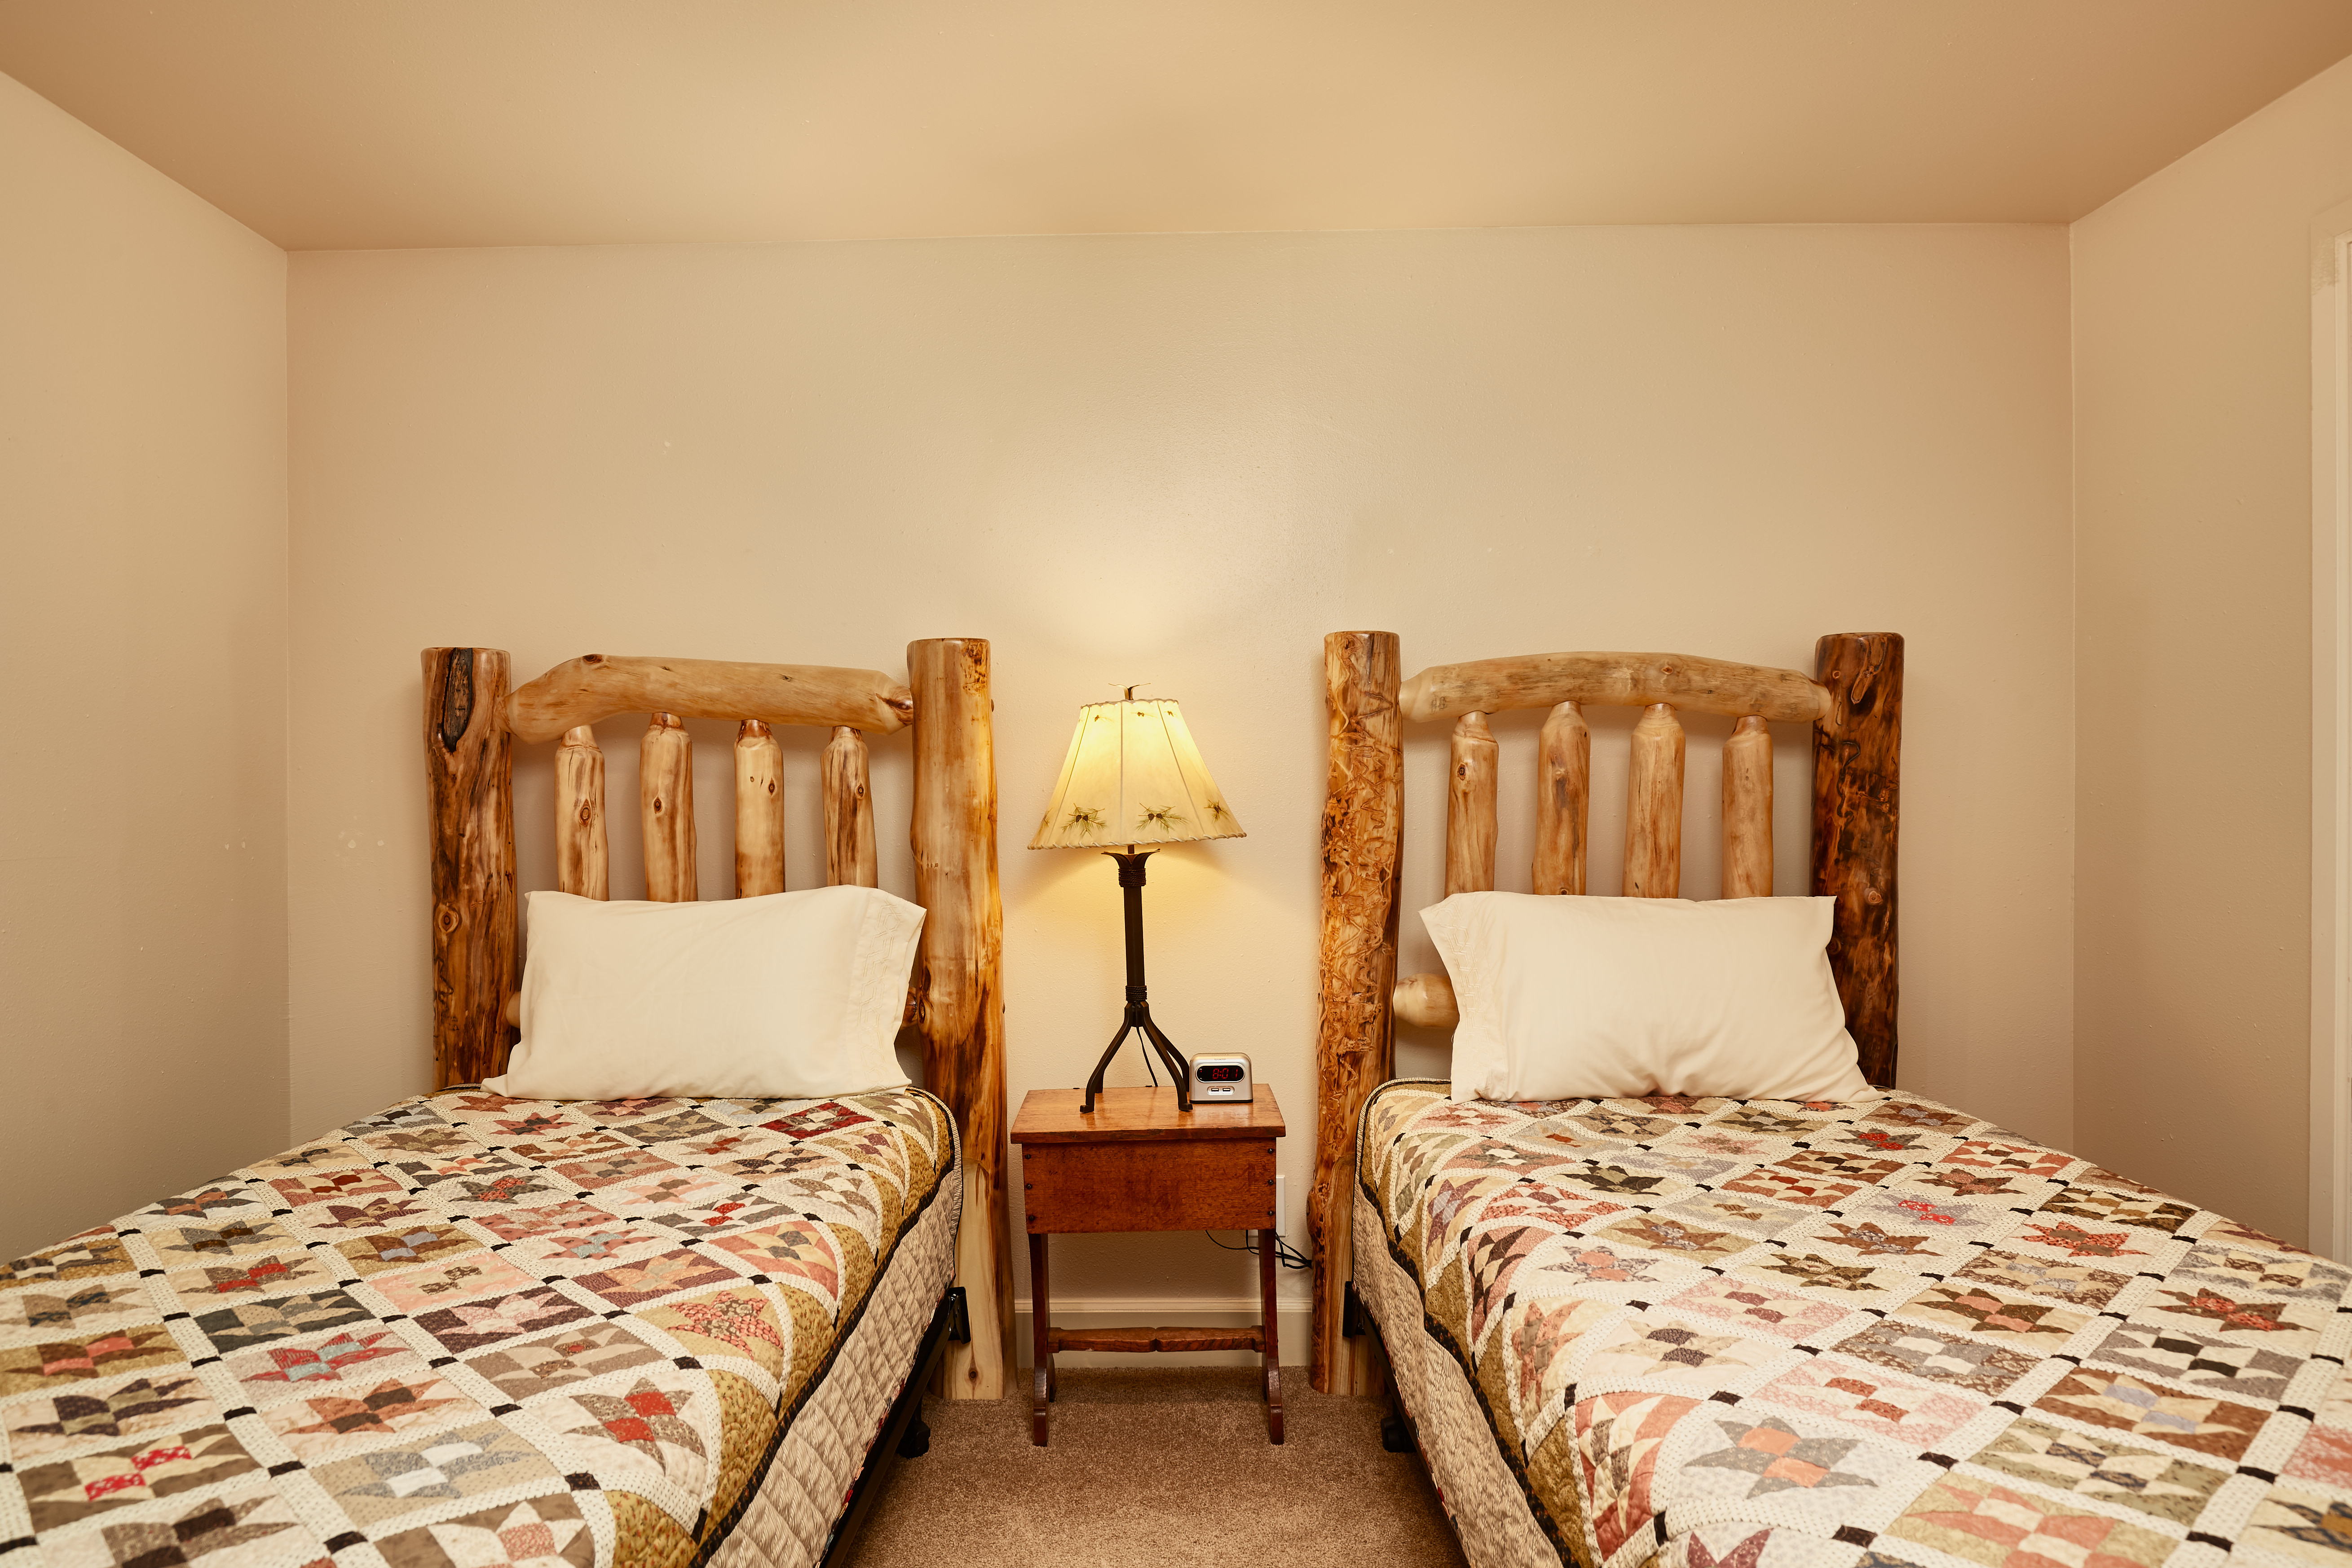 The second downstairs bedroom has two twin beds.